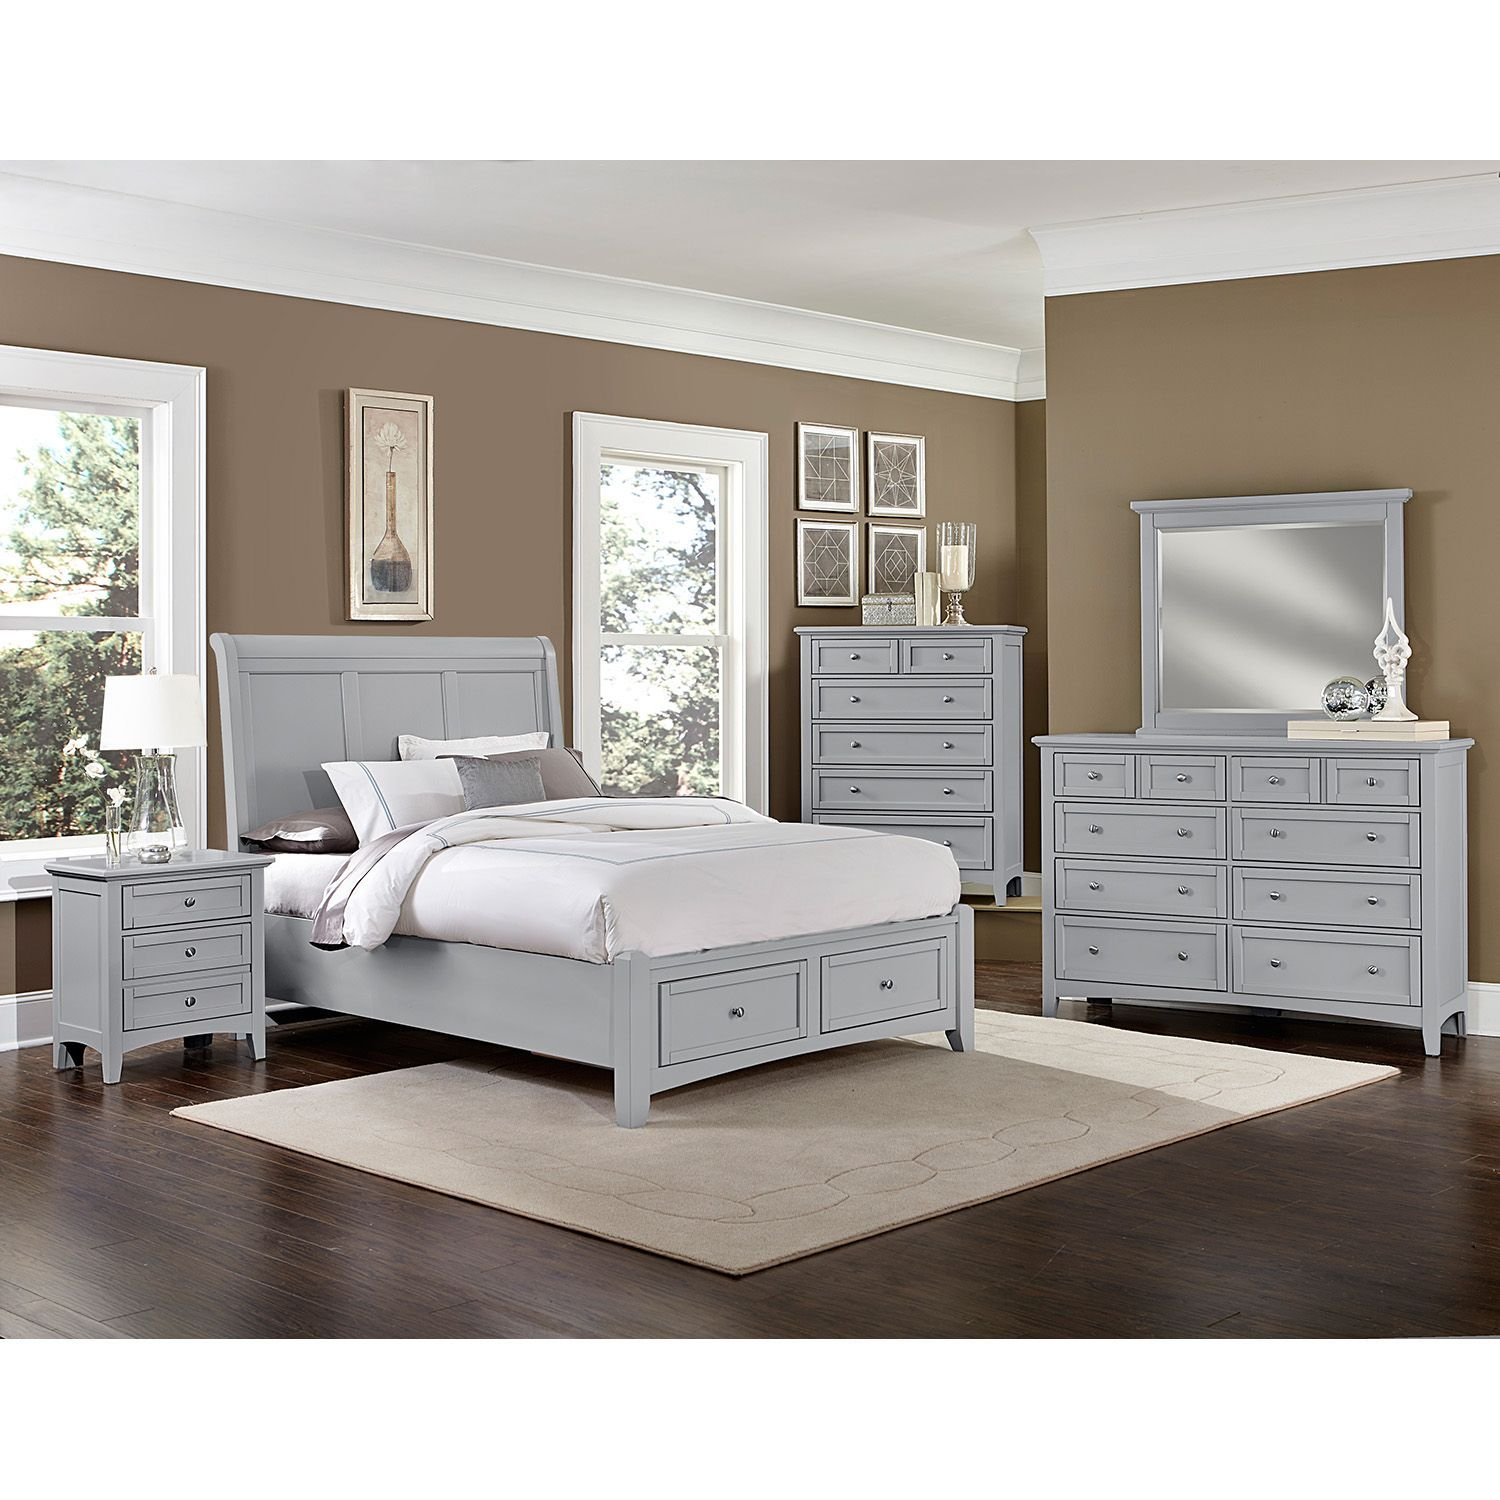 Hamilton Bedroom Furniture Set With Storage Sleigh Bed Sam S Club Bedroom Sets Sleigh Bedroom Set Bedroom Furniture Sets